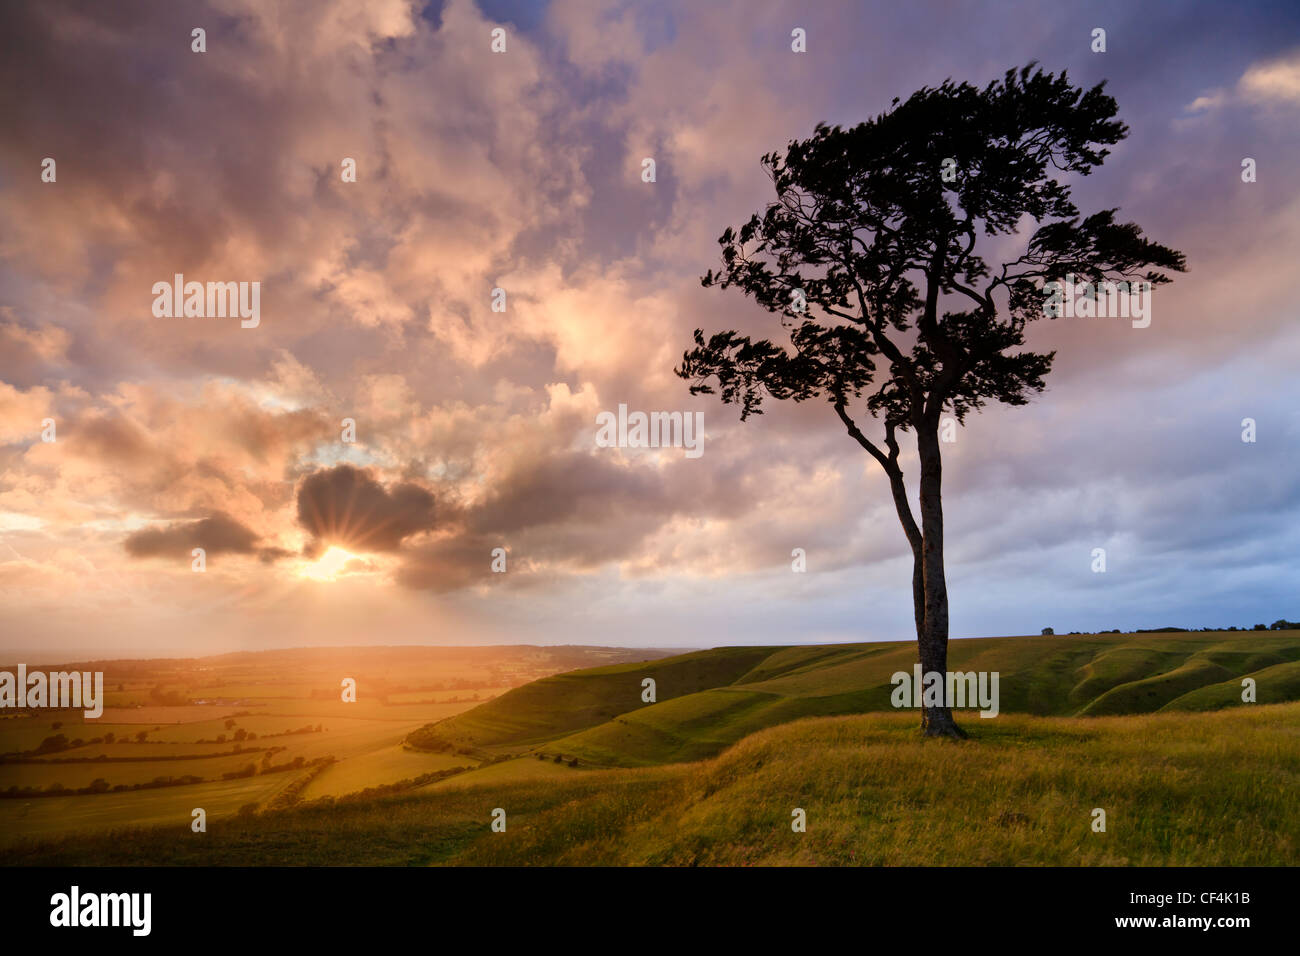 Beech tree on Roundway Hill, near Devizes, at sunset. - Stock Image